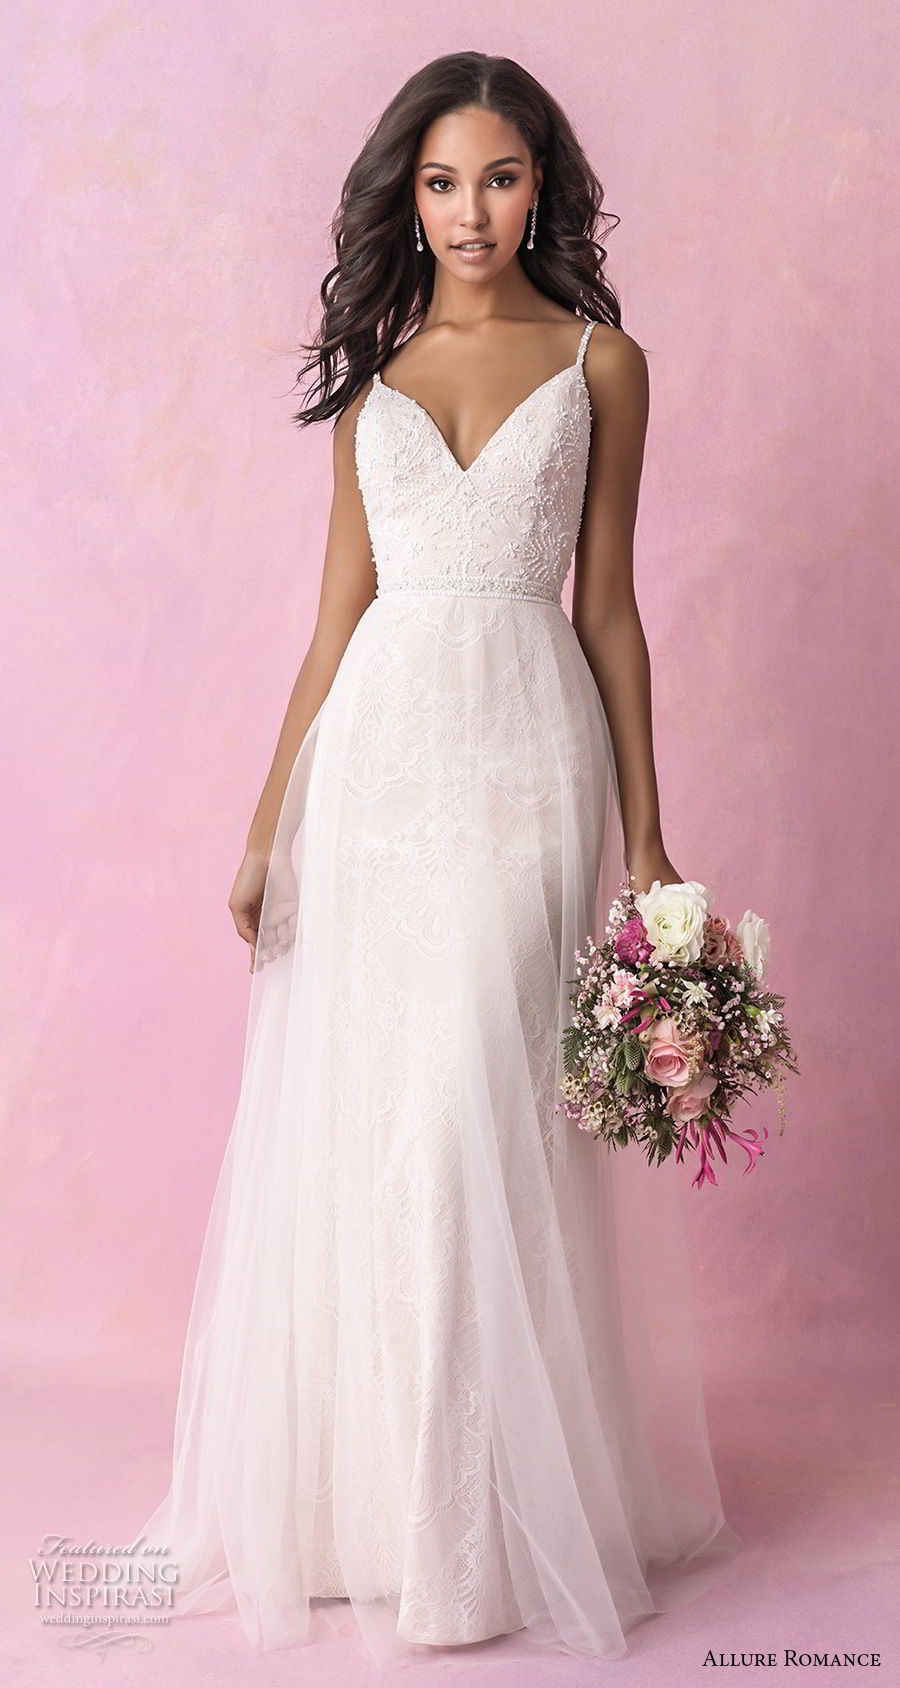 allure romance fall 2018 bridal sleeveless spaghetti strap sweetheart neckline heavily embellished bodice romantic soft a  line wedding dress open scoop back chapel train (16) mv